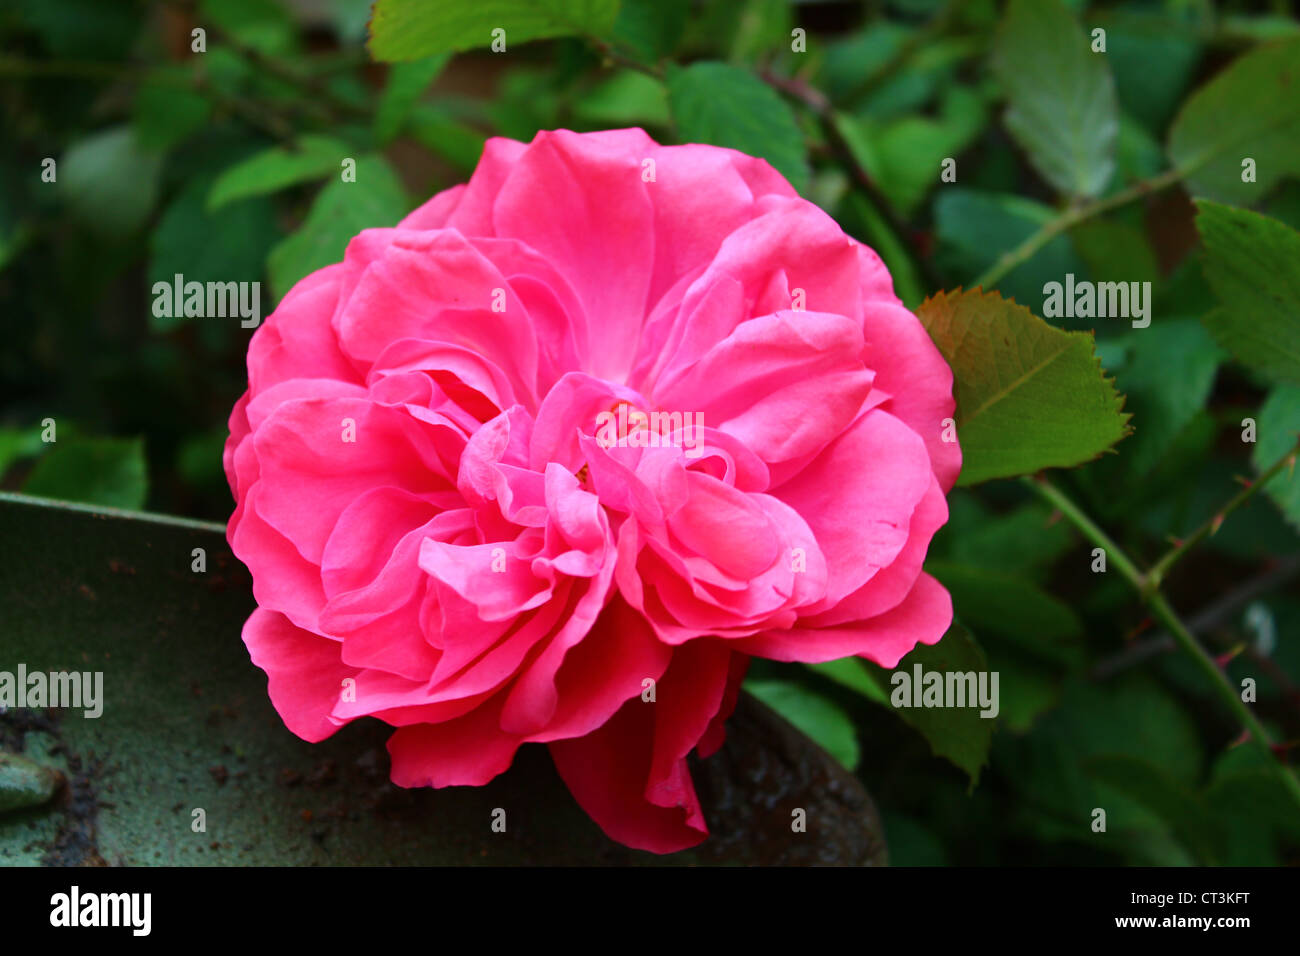 A pink rose set upon a green backdrop of leaves and a hand shovel. - Stock Image